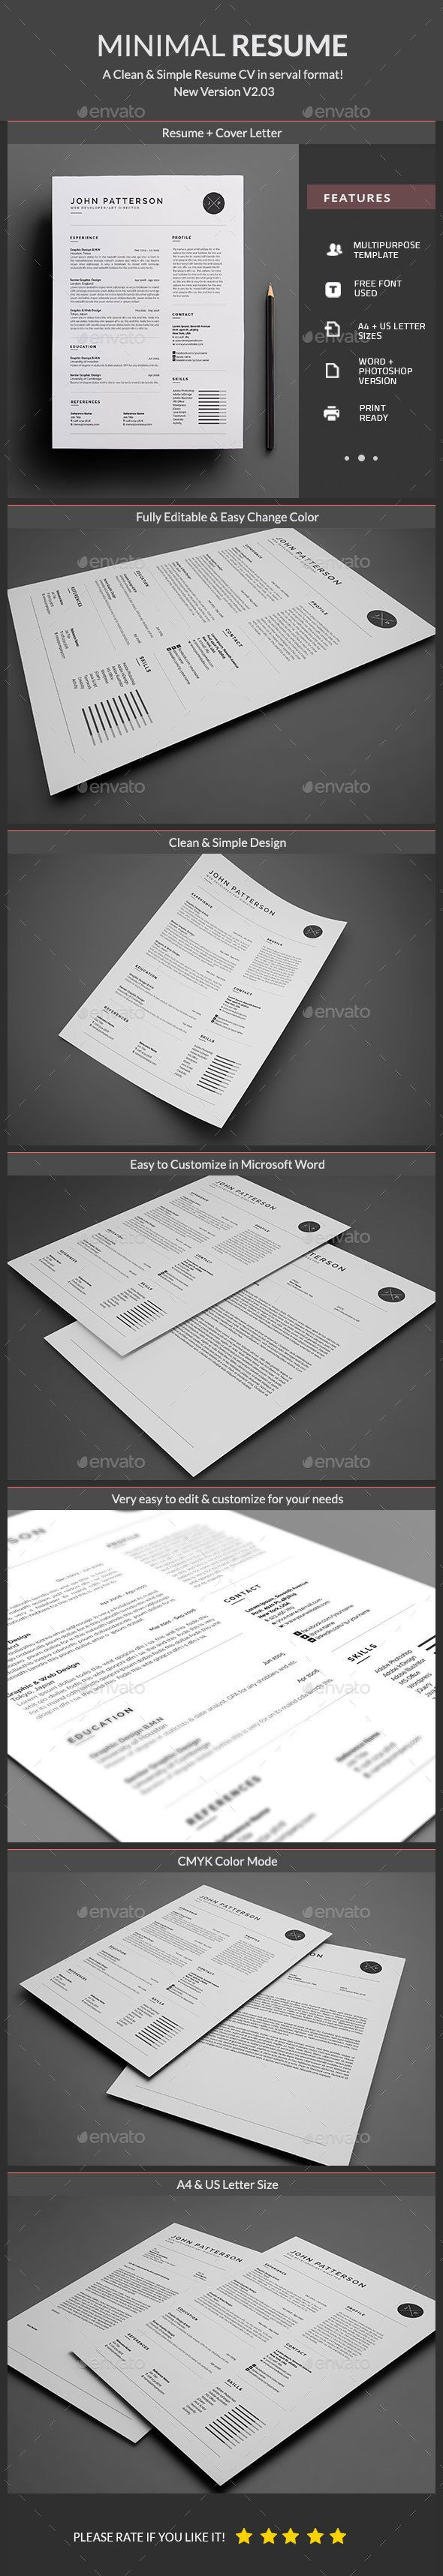 52 best Resume images on Pinterest | Resume templates, Cv template ...